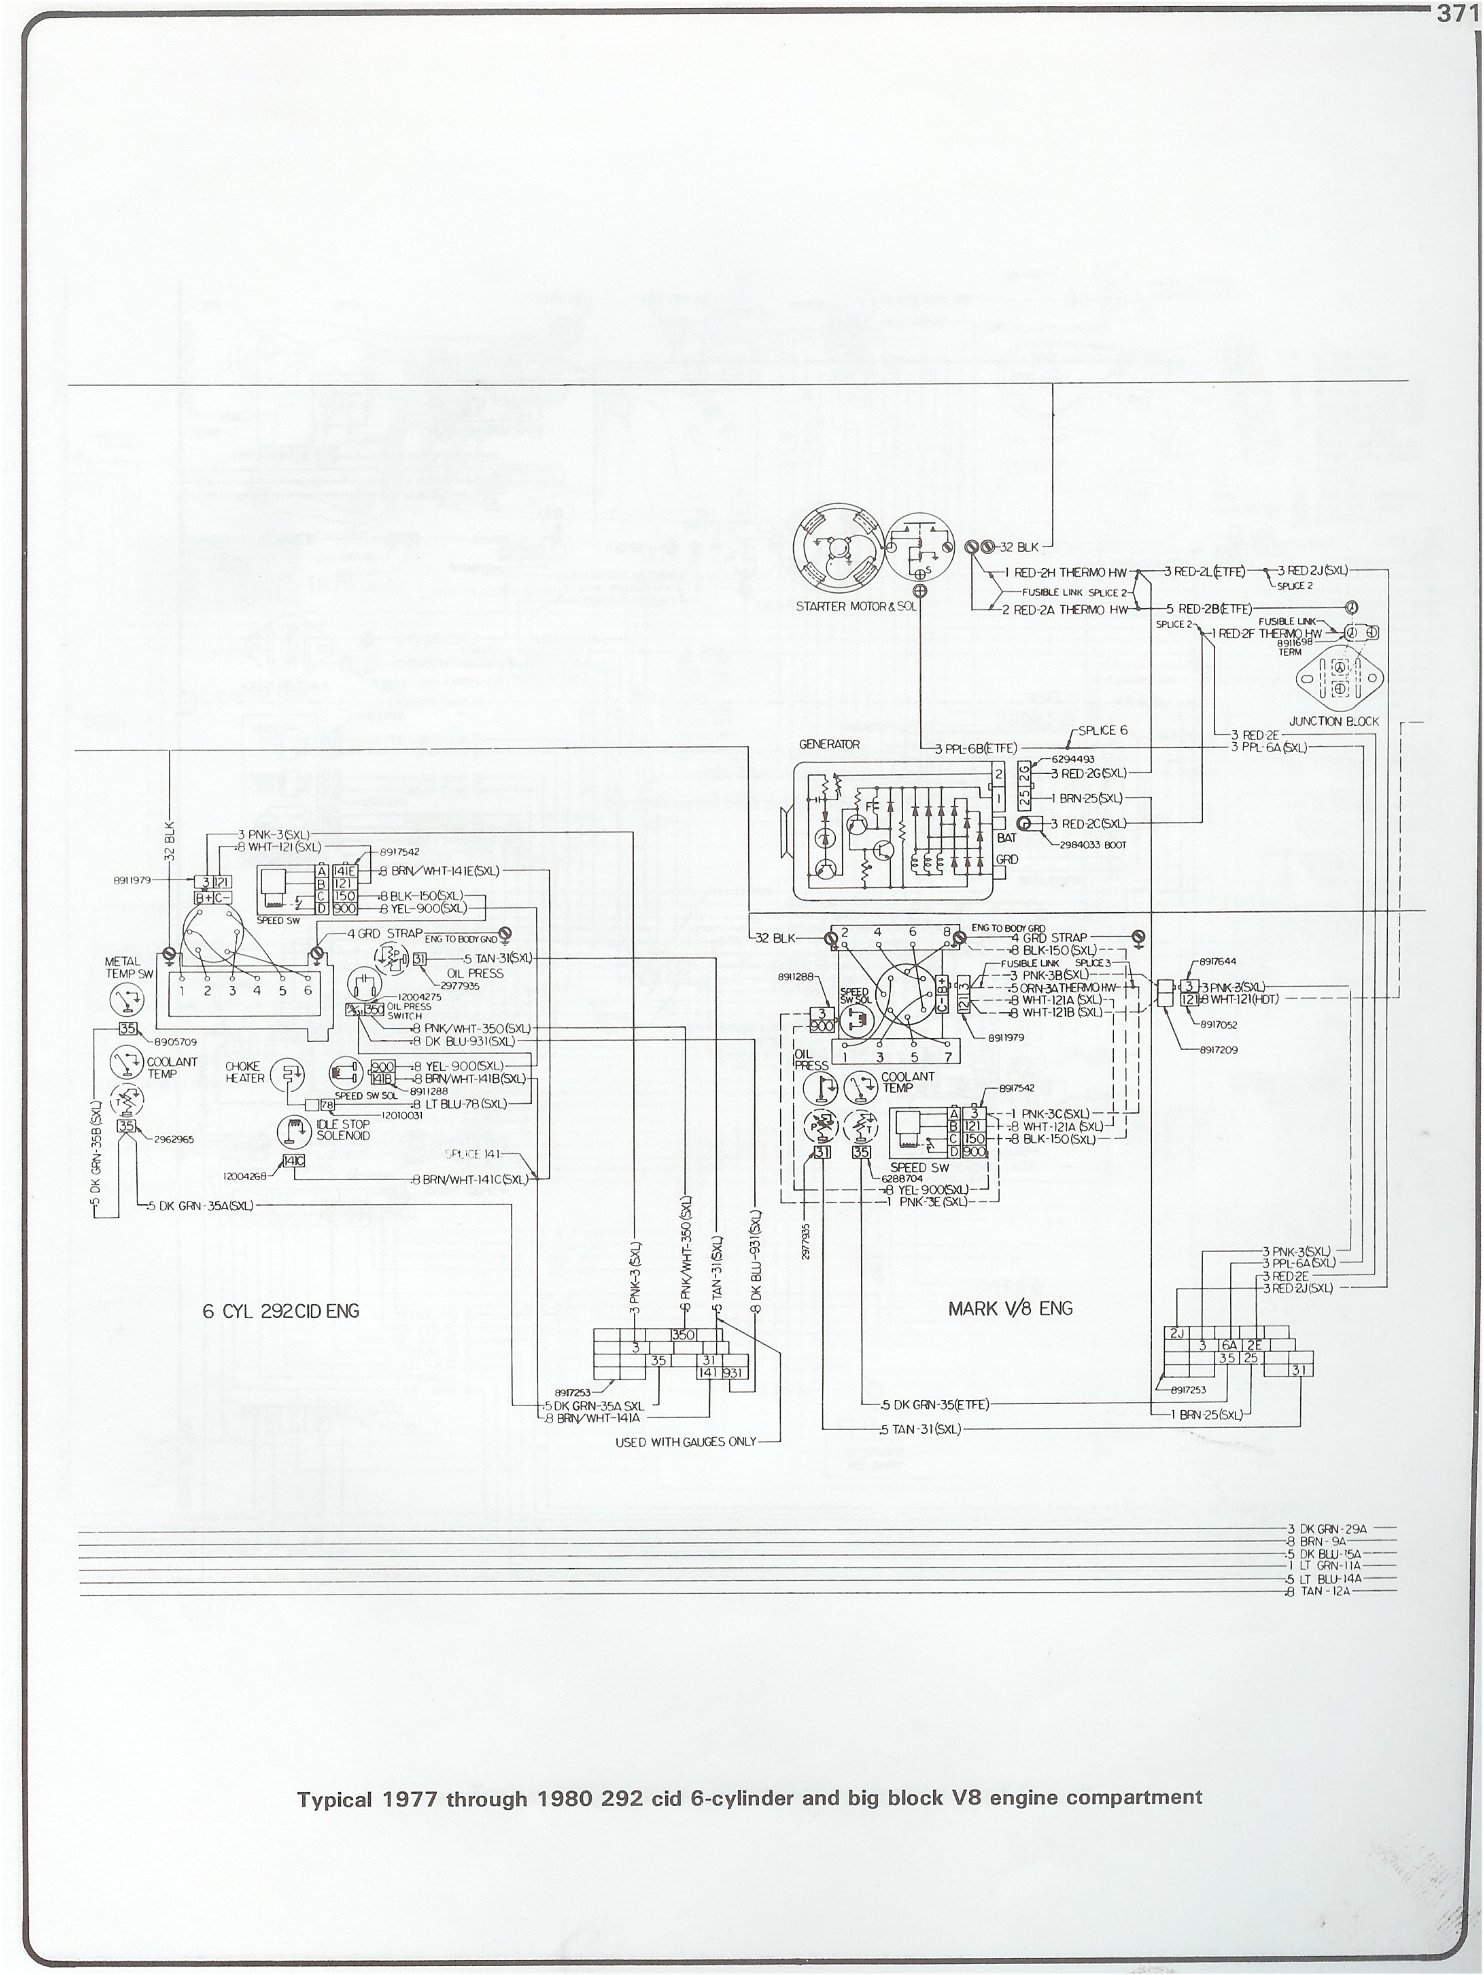 Complete 73 87 Wiring Diagrams 85 Steering Column Diagram Ford Truck 77 80 292 I6 And Bbc Engine